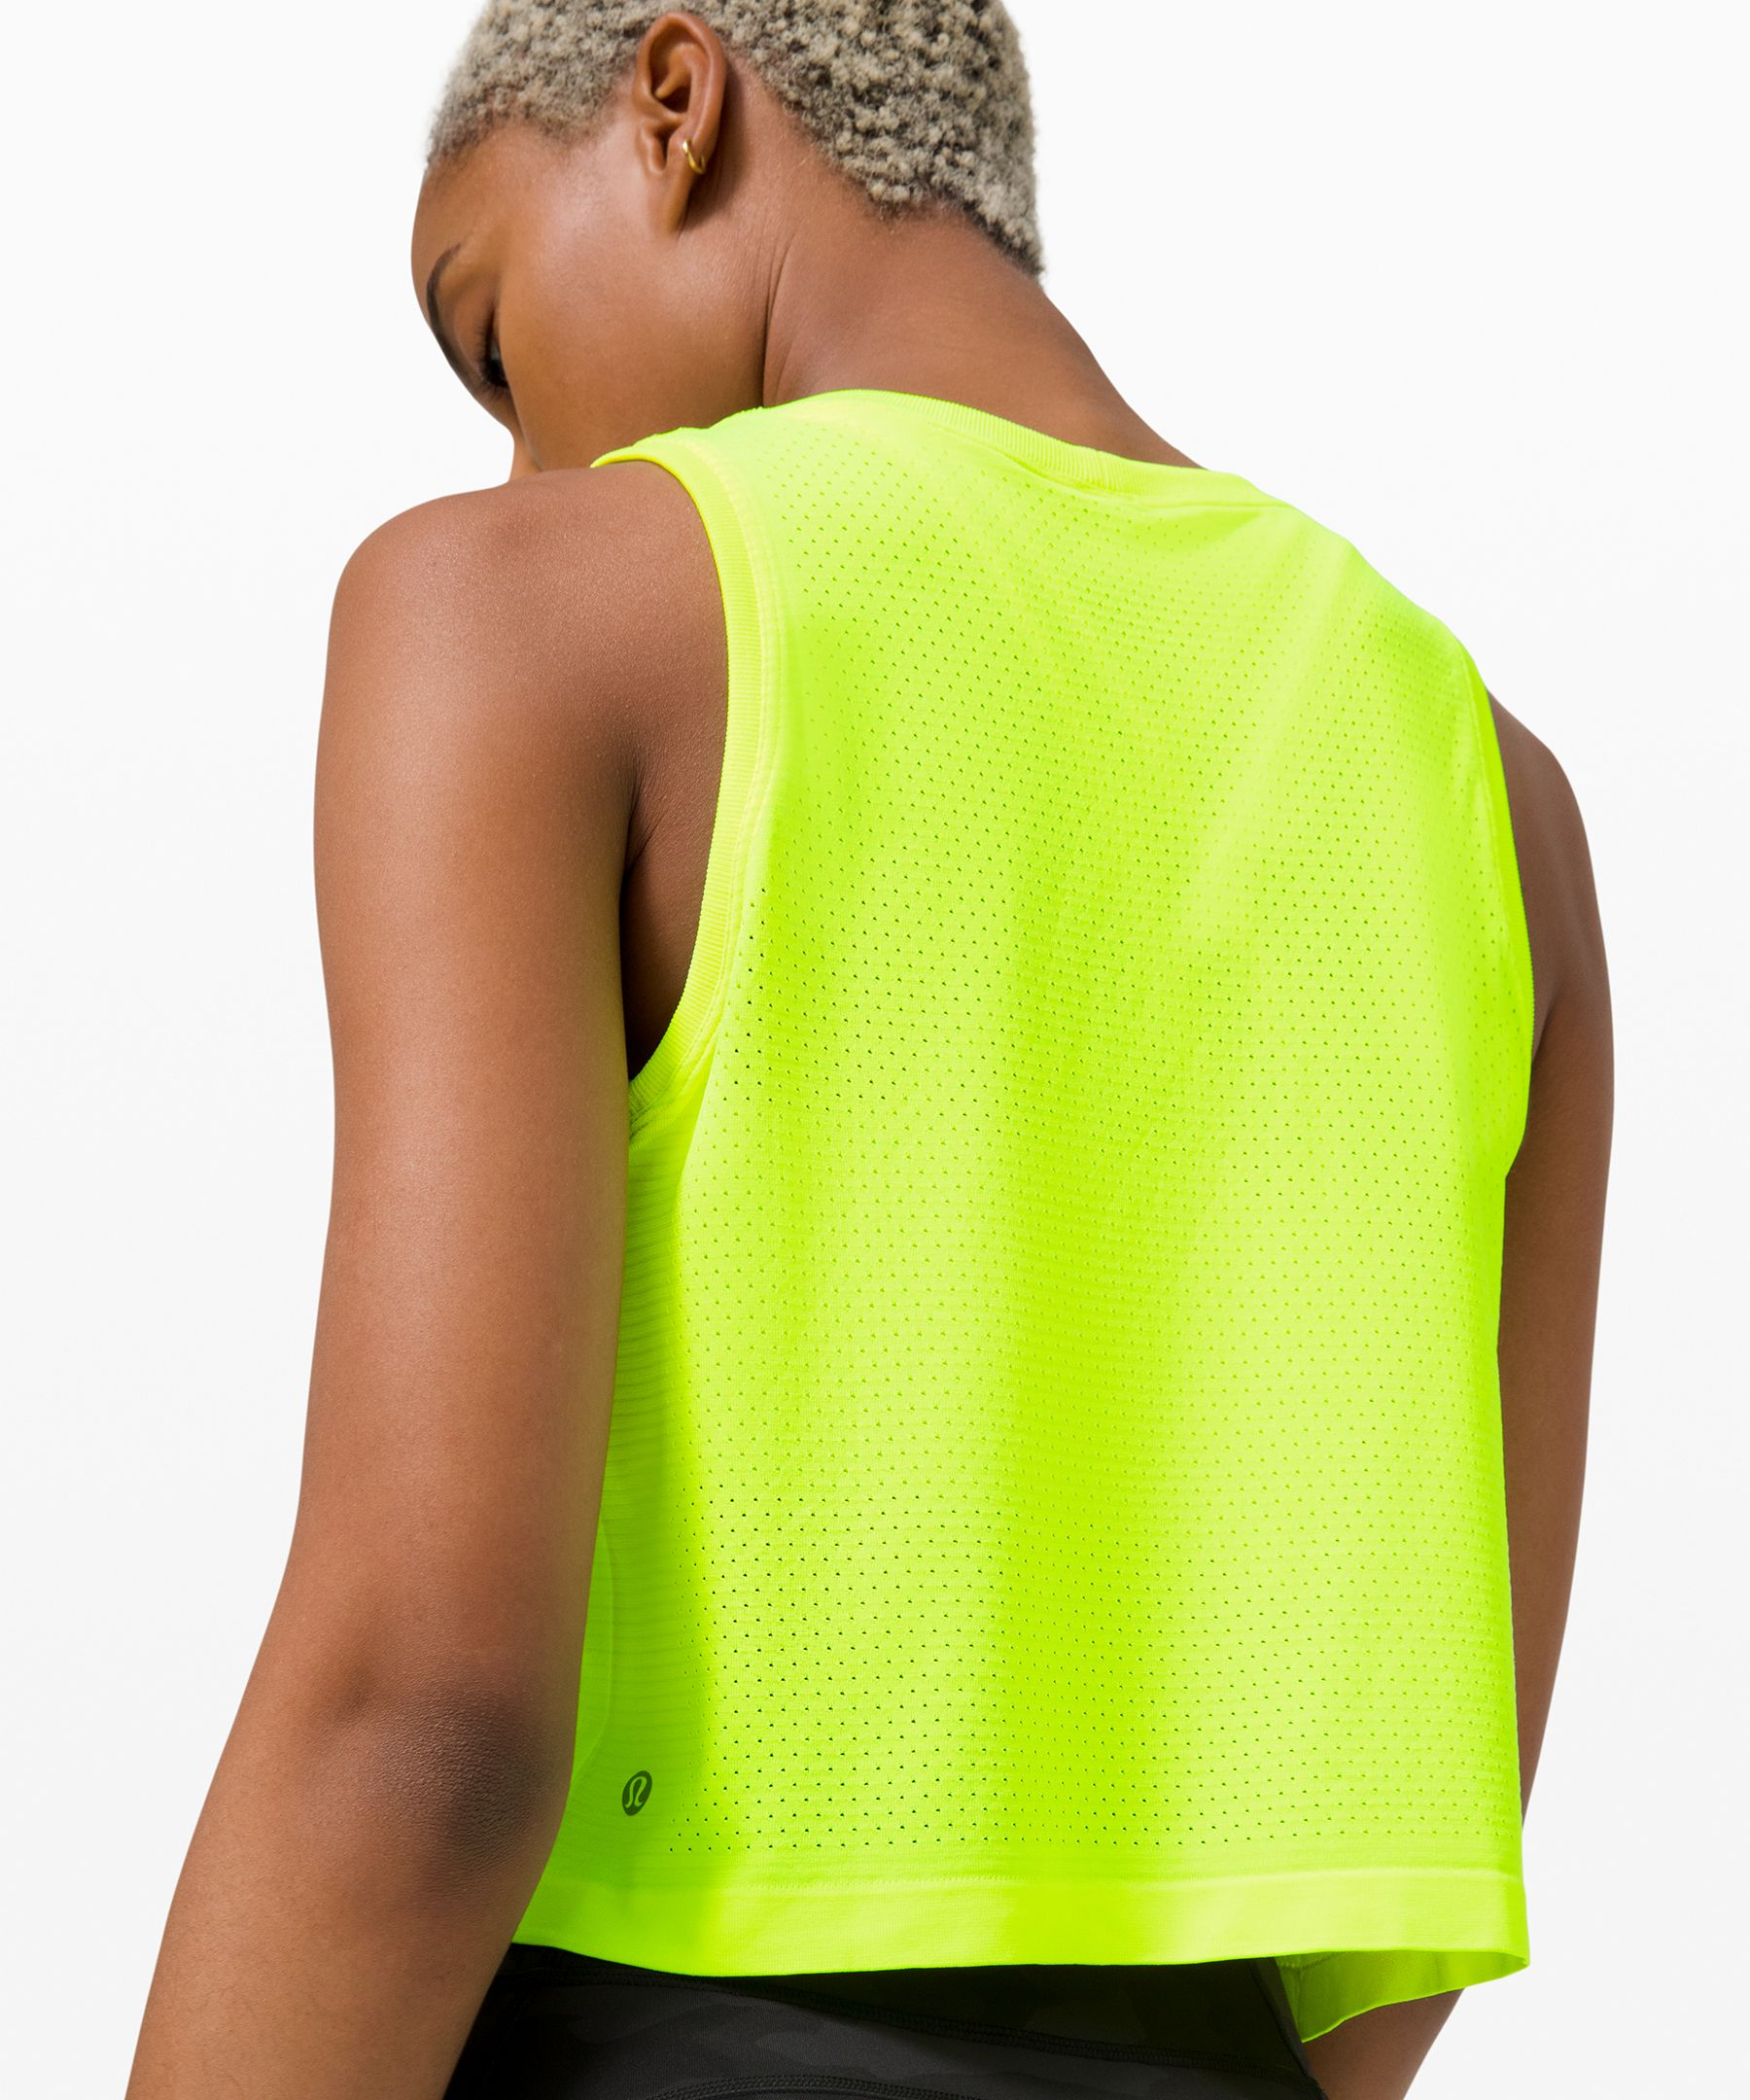 Swiftly Breathe Crop Tank